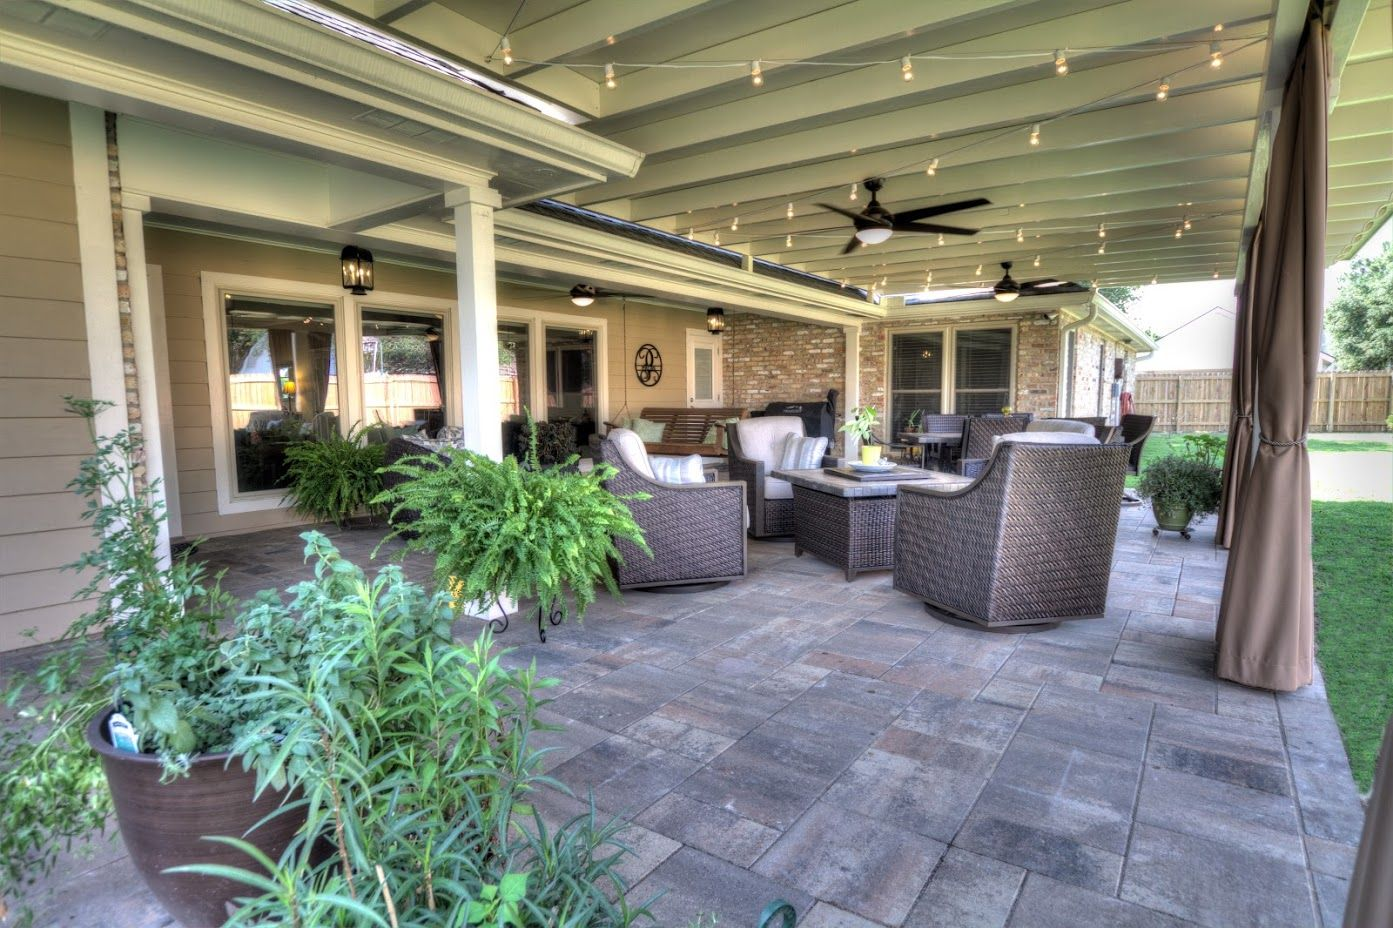 Stone Patio With Ceiling Fans Comforts And Spacious Seating Design Custom Patio Cover Arbor In Baton Rouge Www Lasunrooms Patio Patio Stones Covered Patio